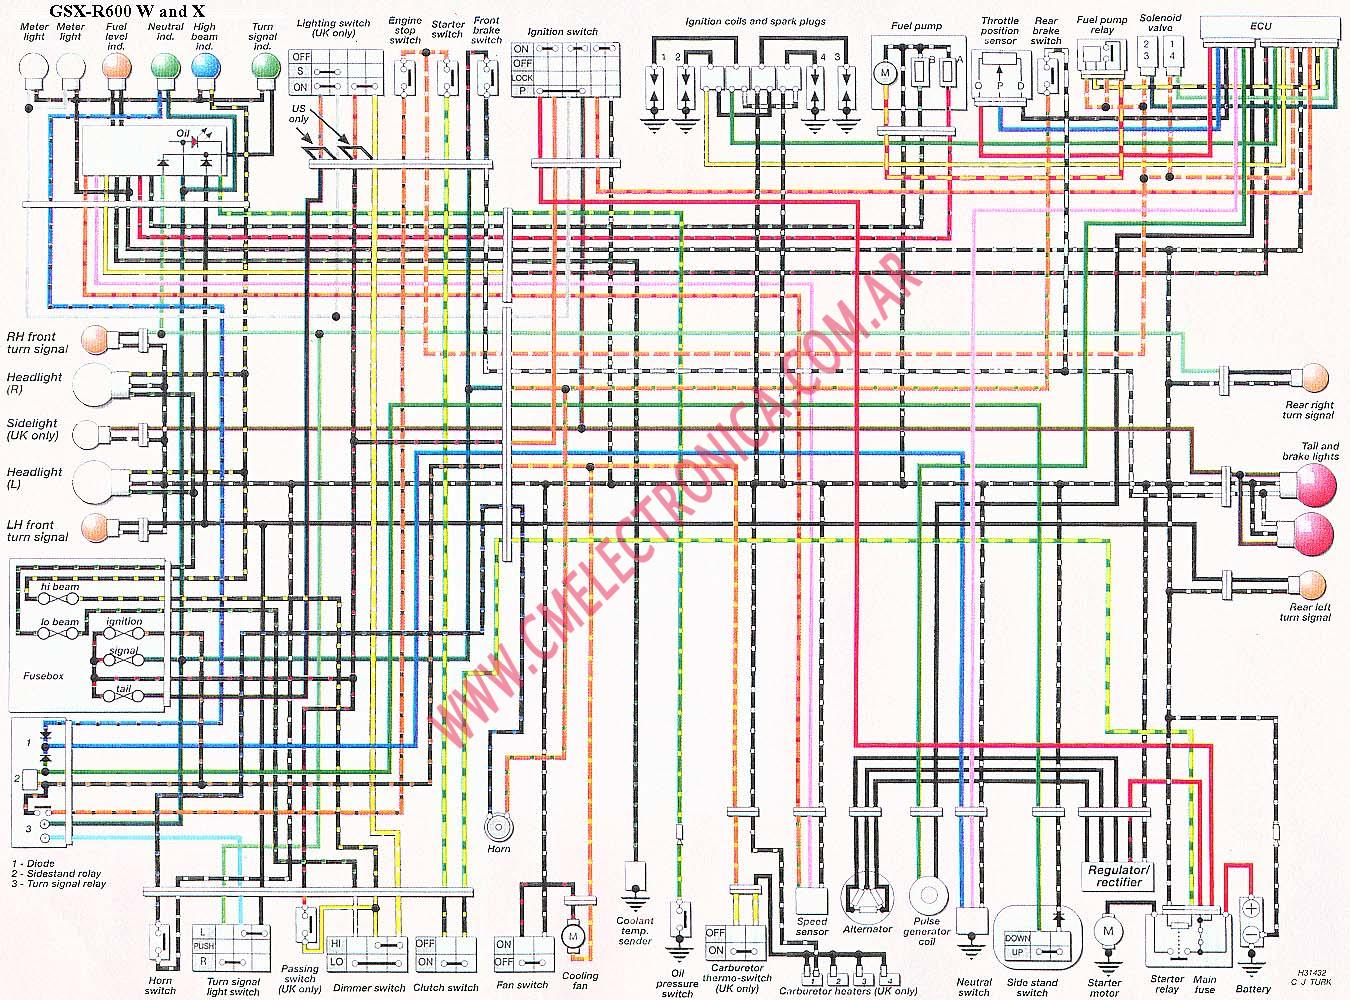 suzuki bandit 600 wiring diagram wiring library. Black Bedroom Furniture Sets. Home Design Ideas